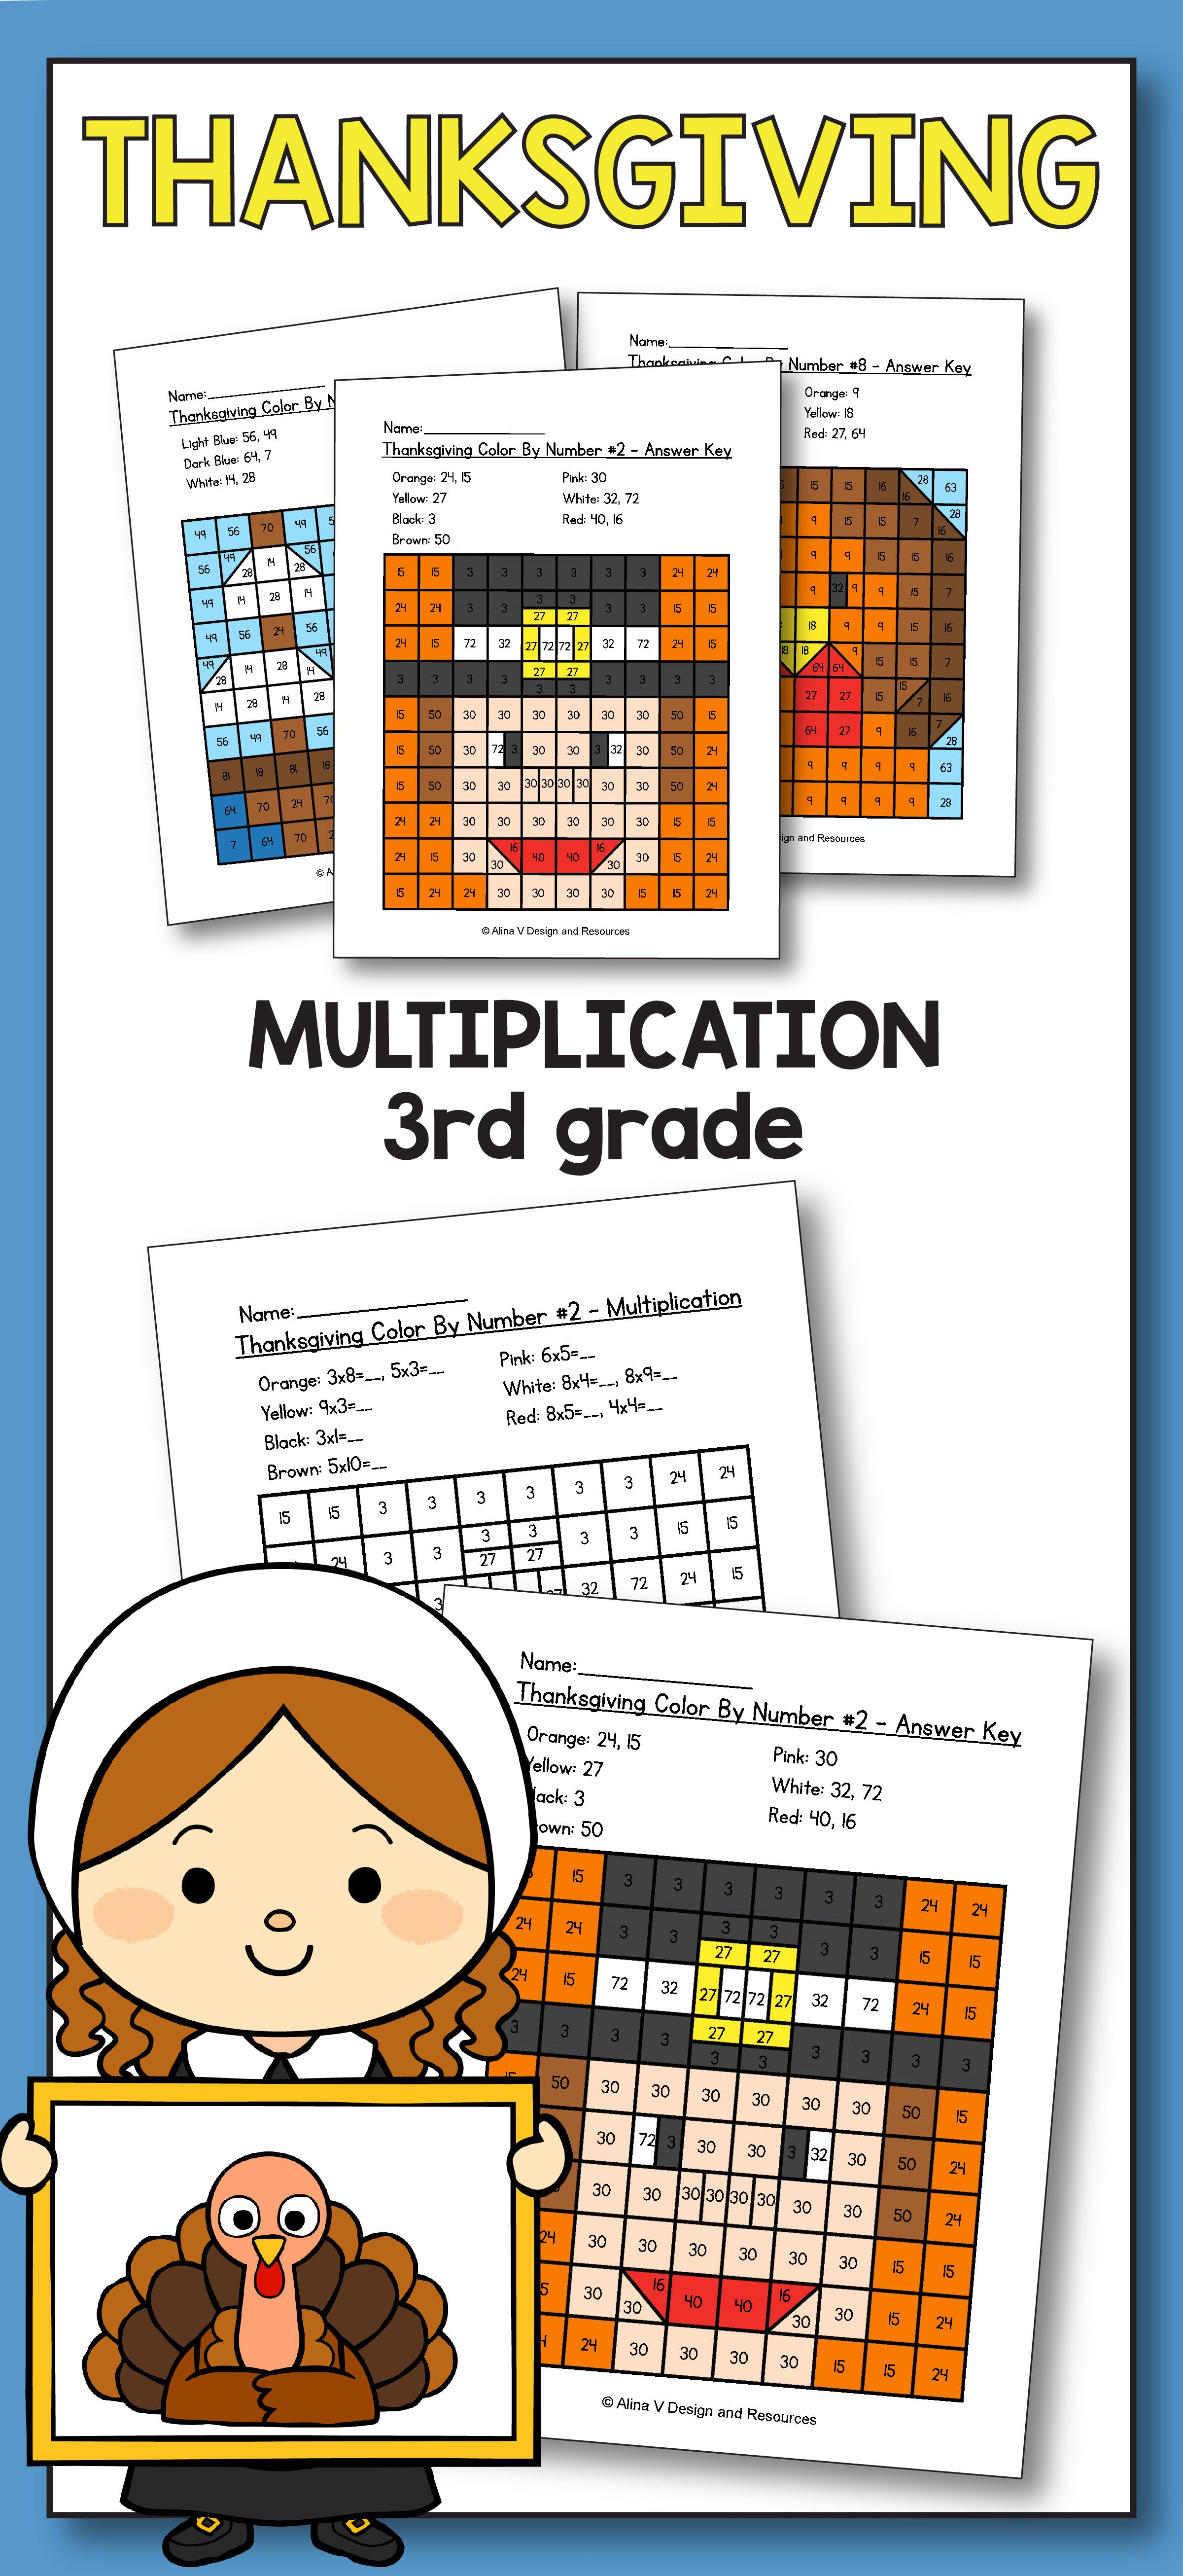 medium resolution of Thanksgiving Multiplication Math Worksheets for 3rd grade kids is fun with  the…   Thanksgiving math worksheets